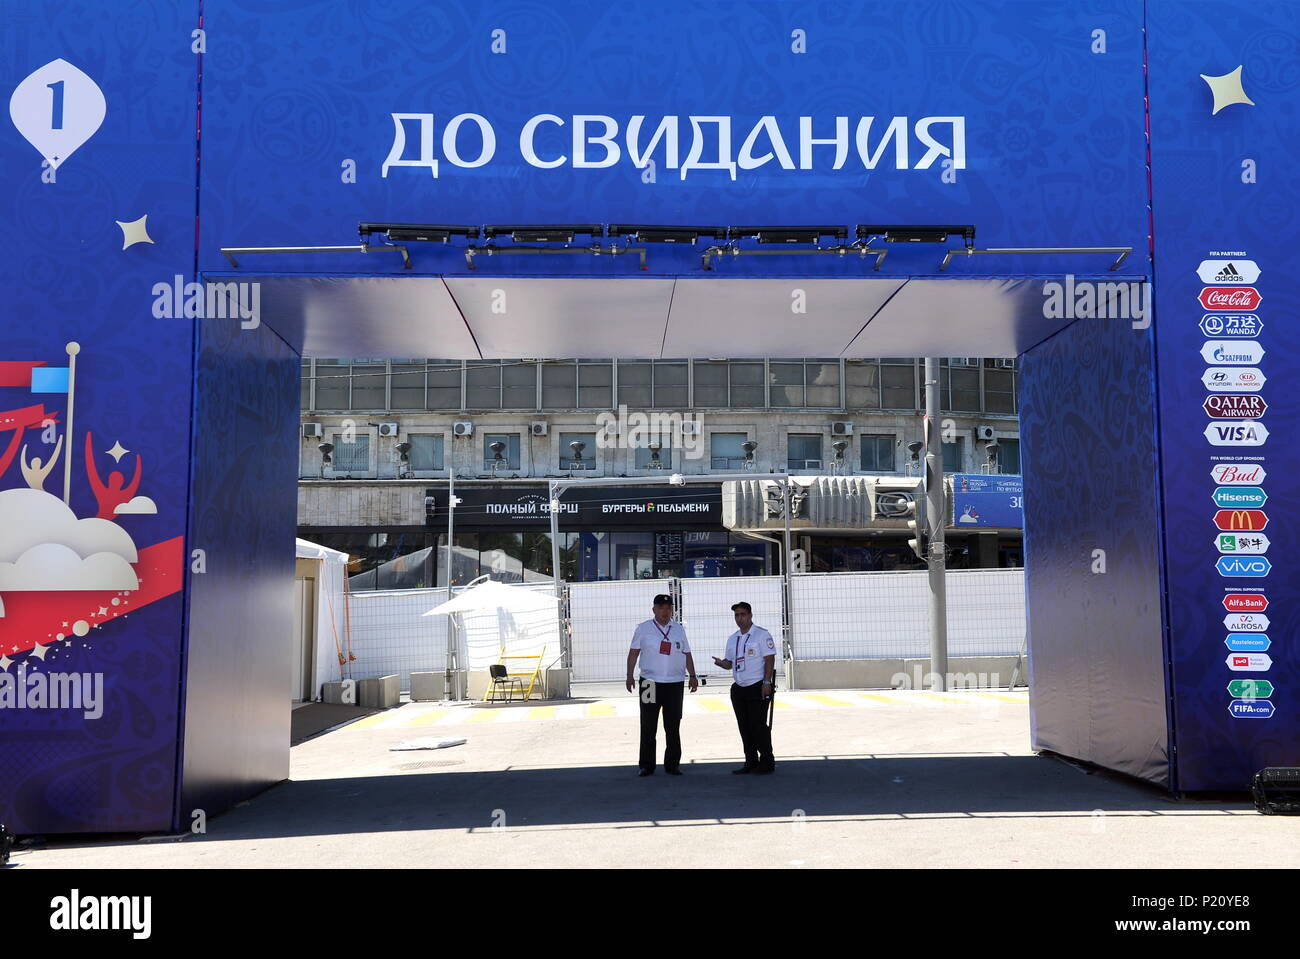 Rostov On Don, Russia. 13th June, 2018. ROSTOV-ON-DON, RUSSIA - JUNE 13, 2018: An exit from a venue of the 2018 FIFA World Cup Fan Fest. Mikhail Romanov/TASS Credit: ITAR-TASS News Agency/Alamy Live News Stock Photo